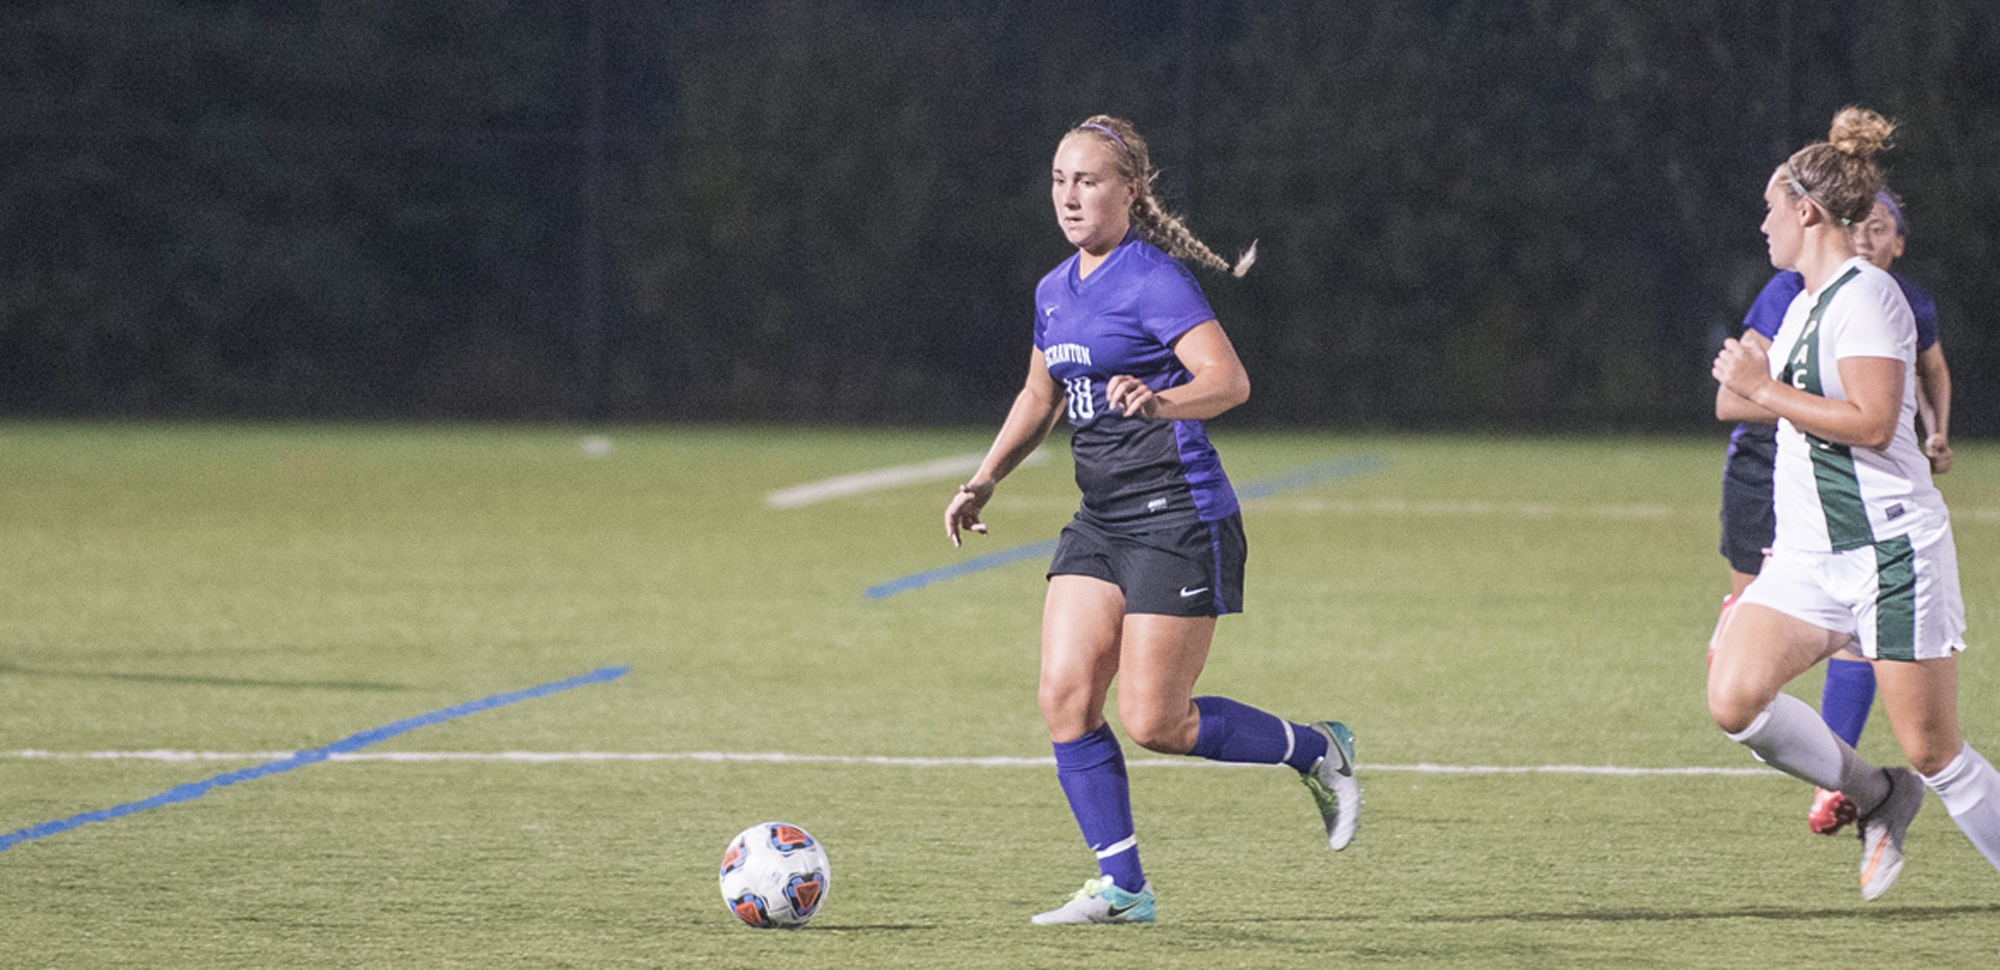 Sophomore midfielder Taylor Stevens had her team-leading fifth assist of the season on Tuesday night.